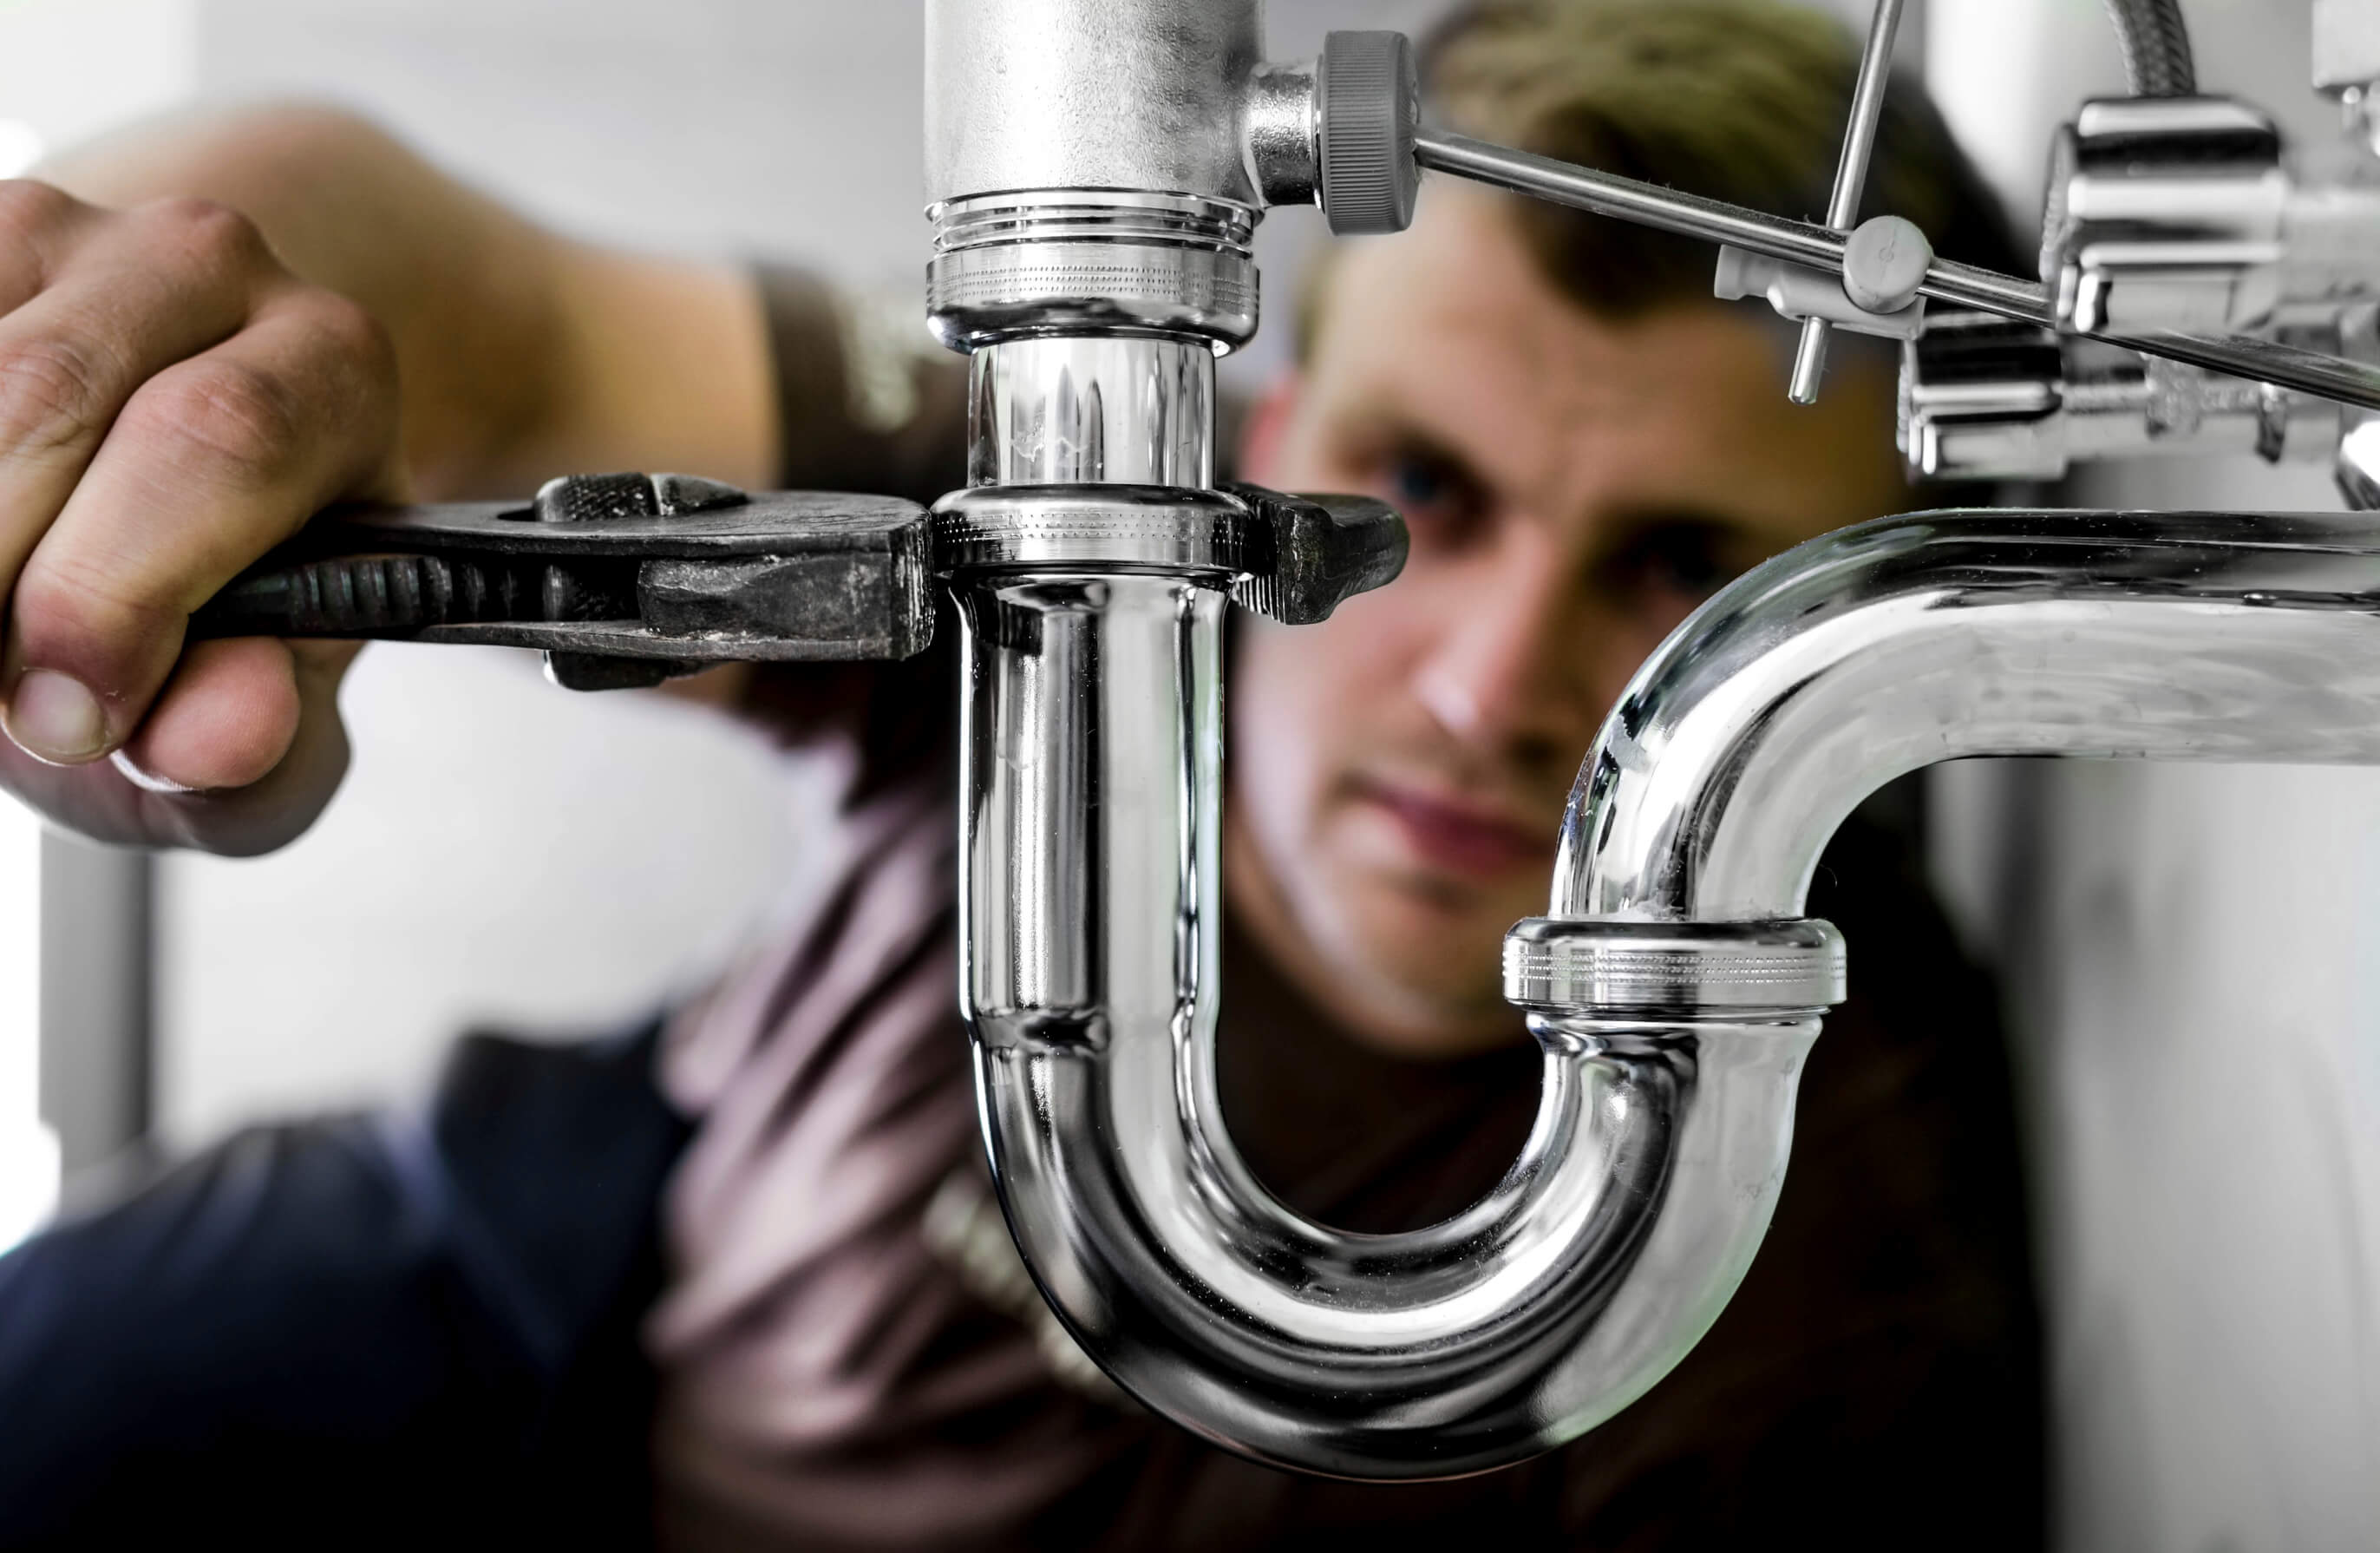 When Do You Need to Hire a Plumber?